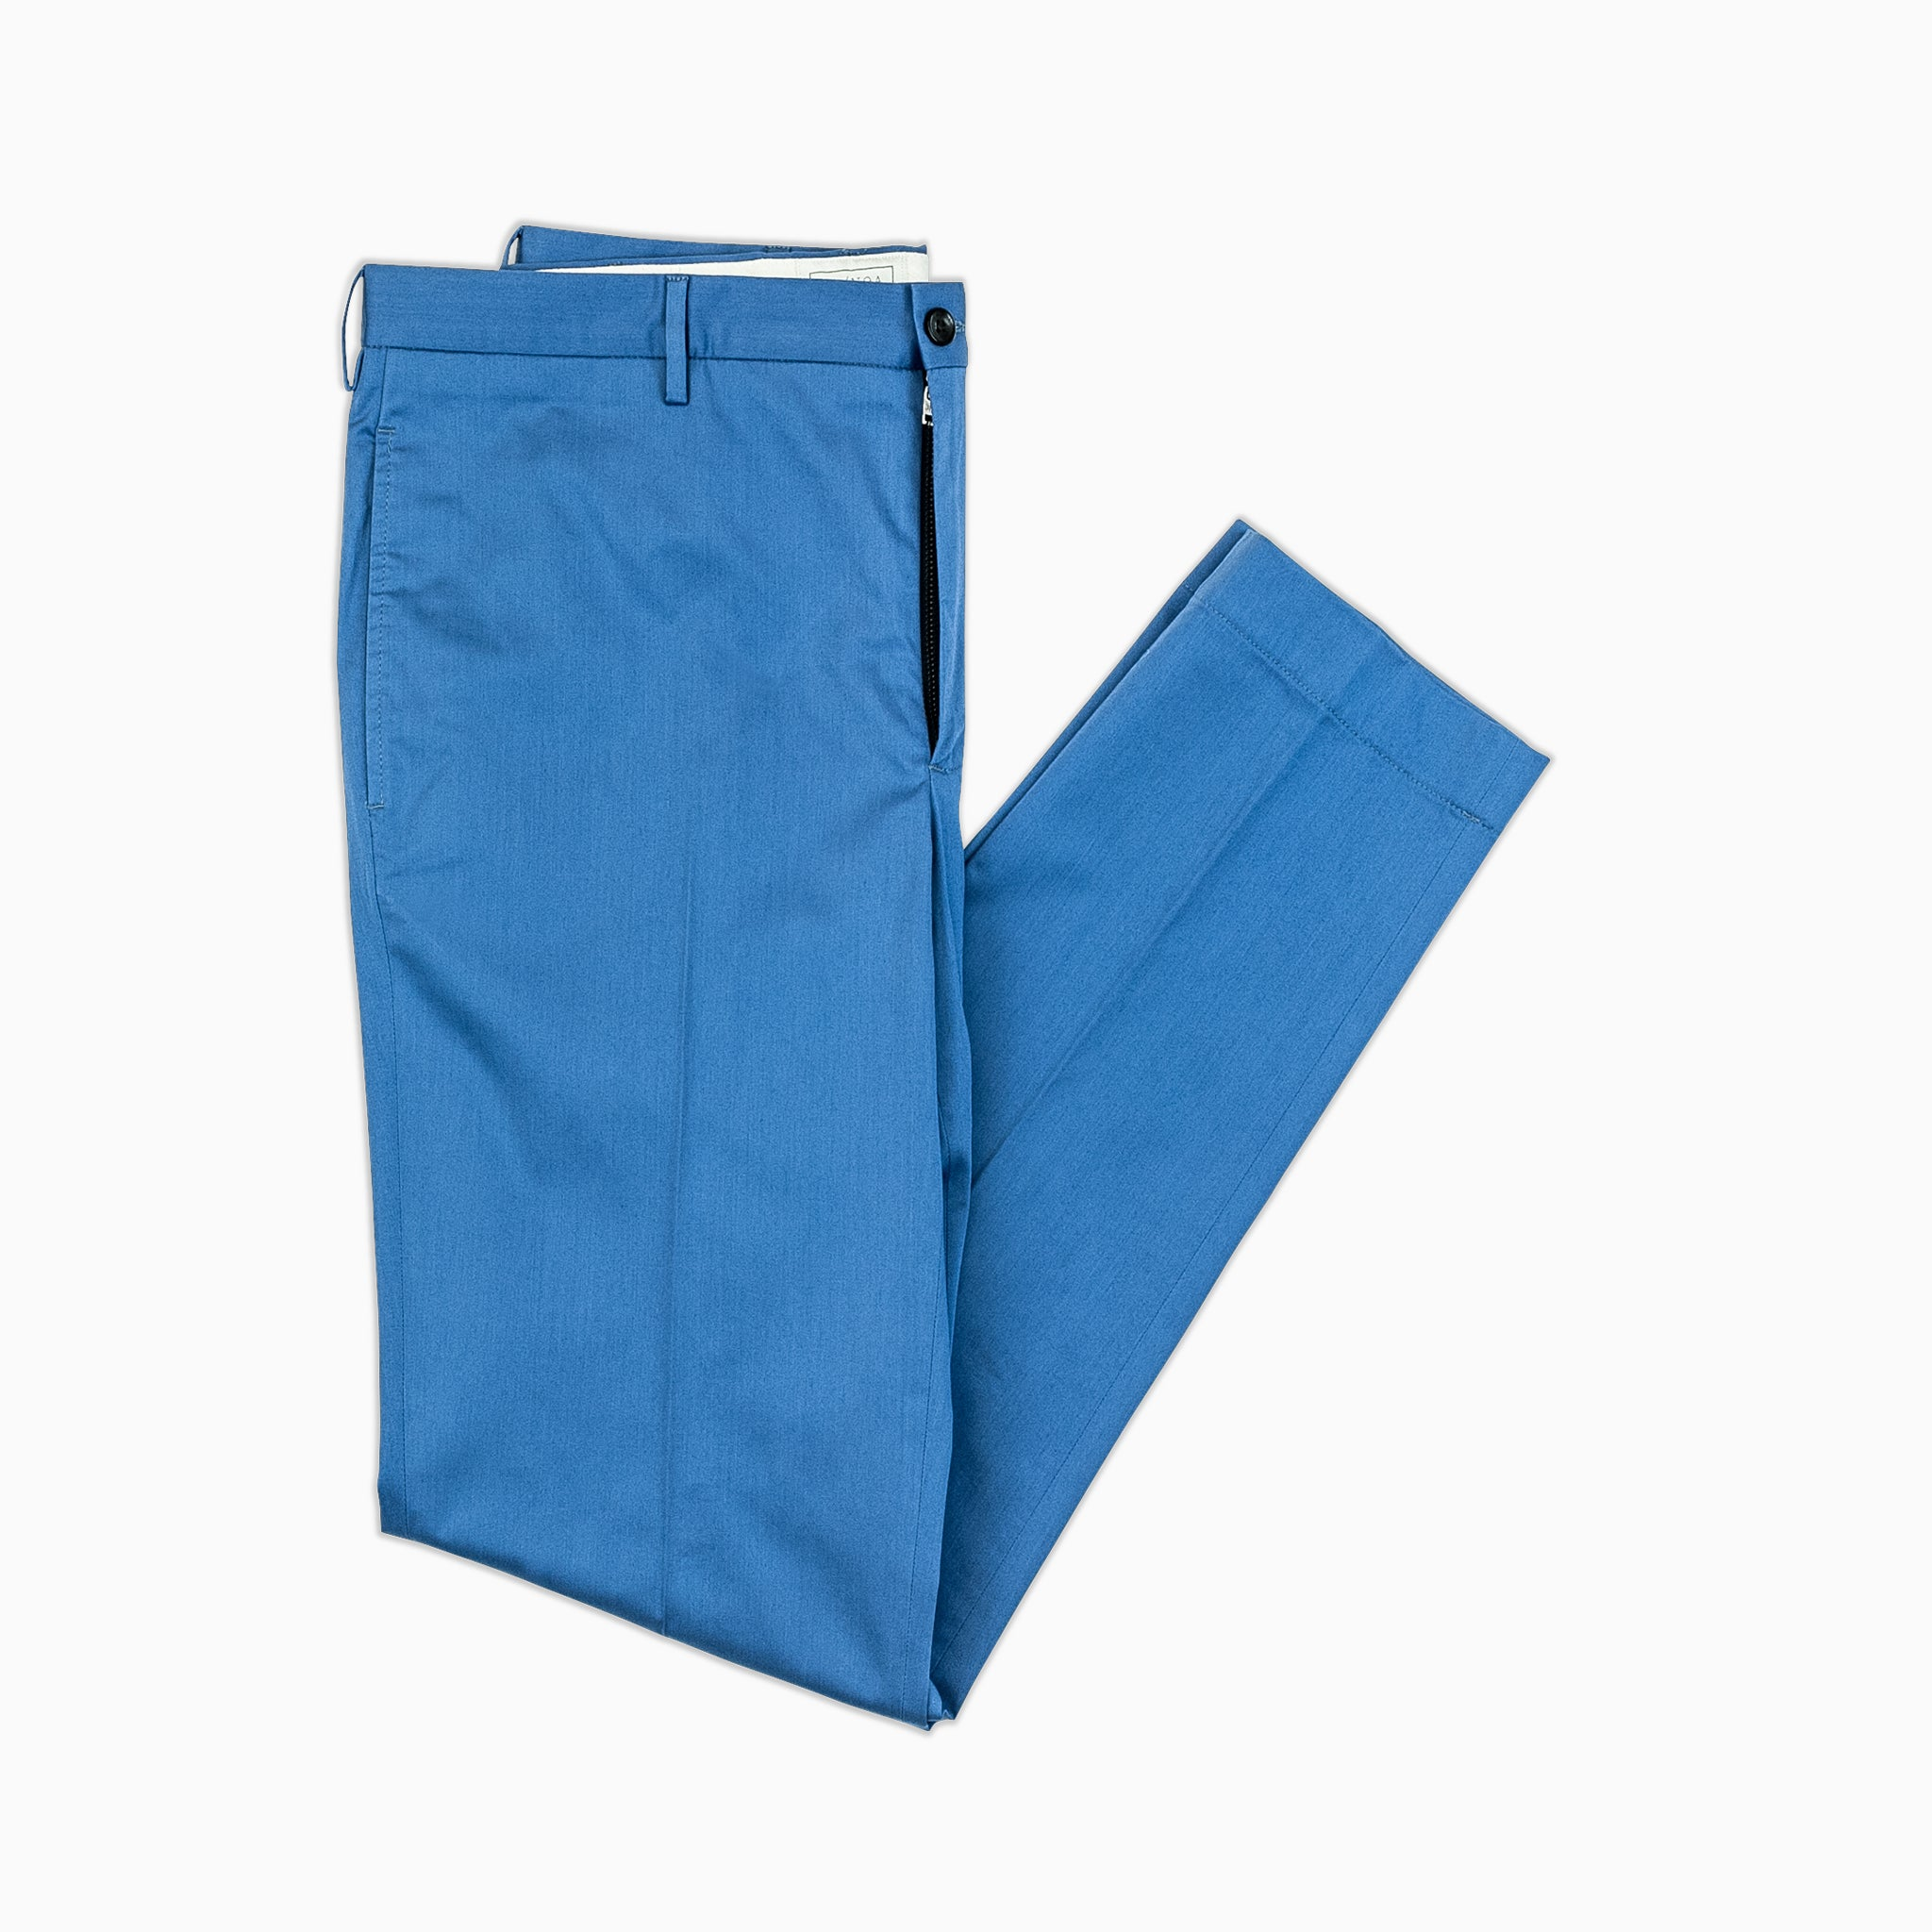 Arbaud chino pants in fine stretch gabardine cotton (river blue)